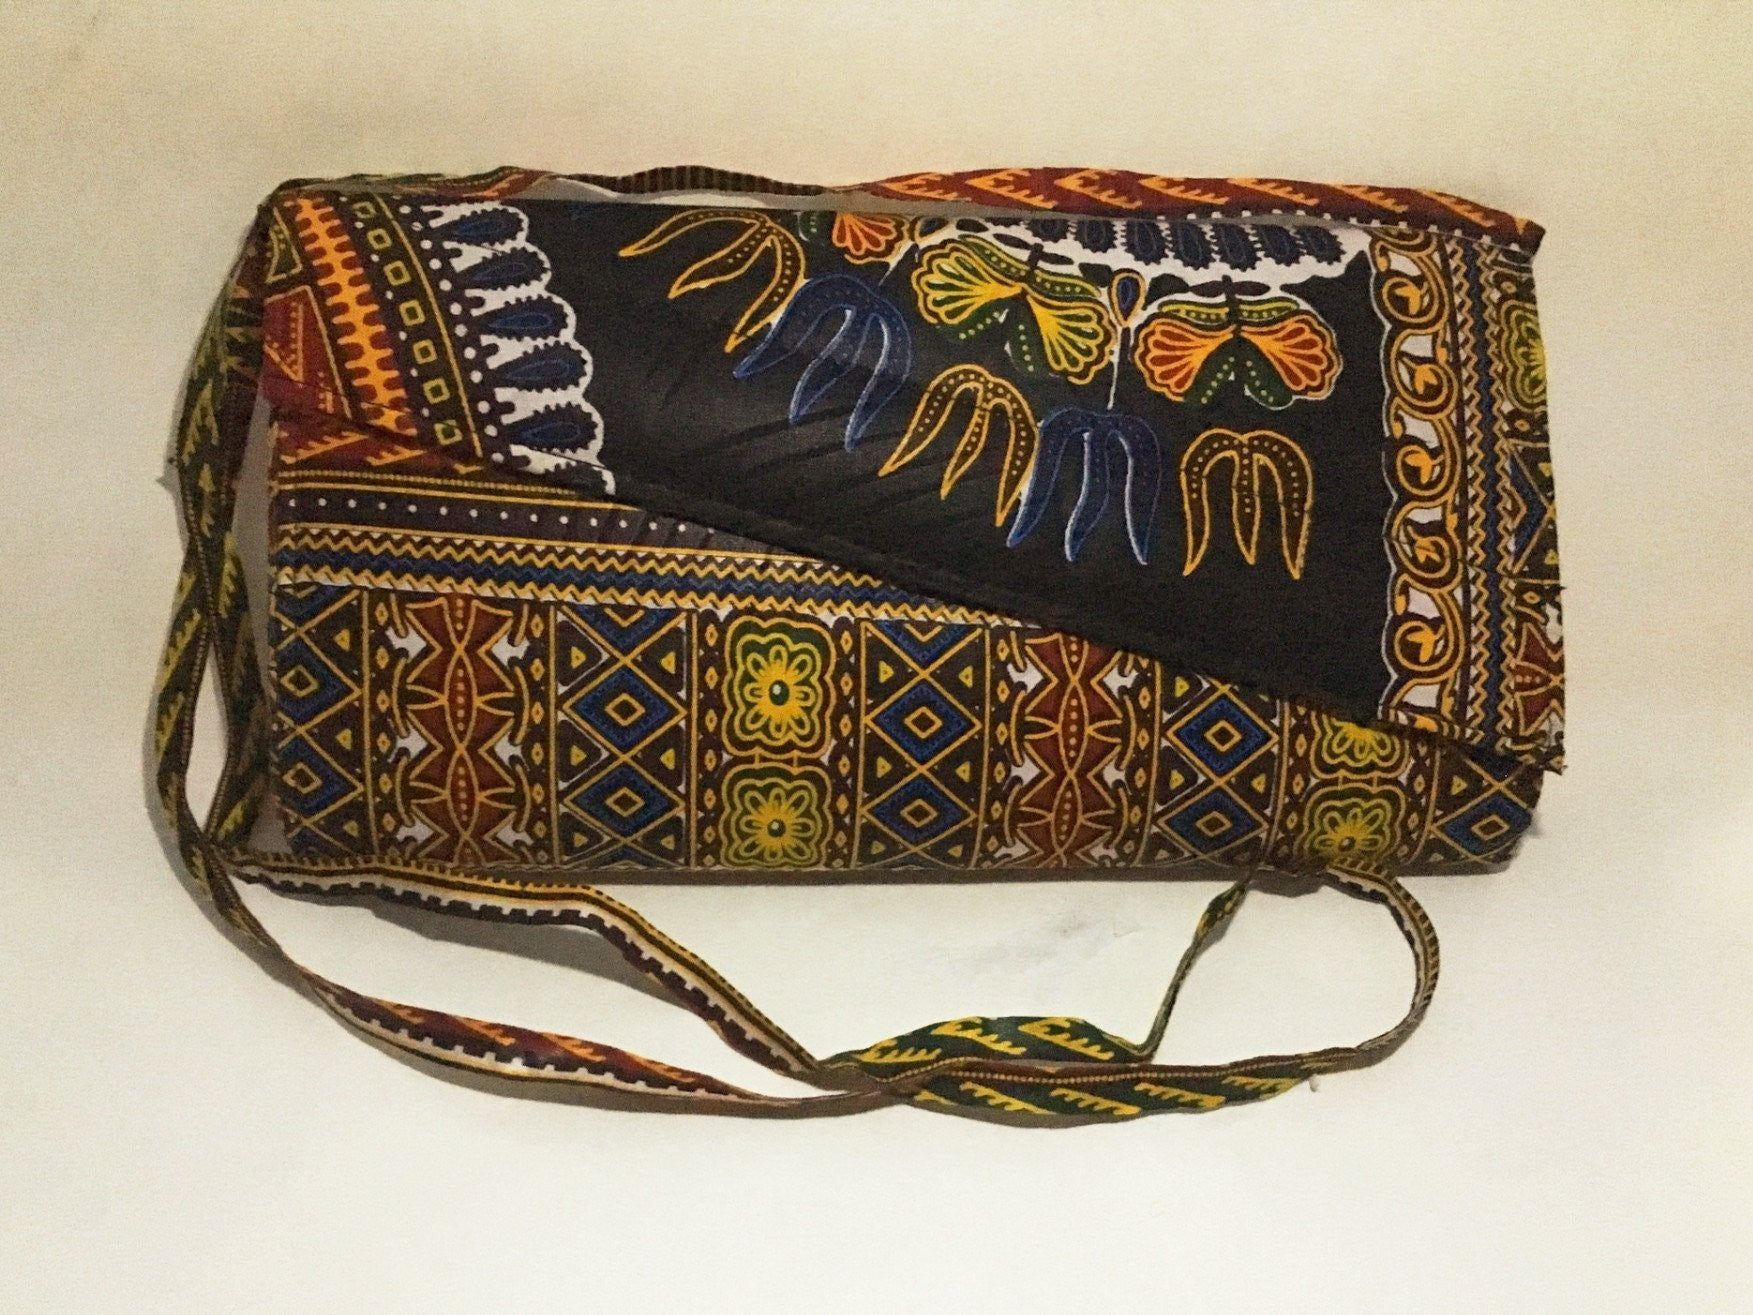 Ankara Print Crossbody Clutch Frontview with strap